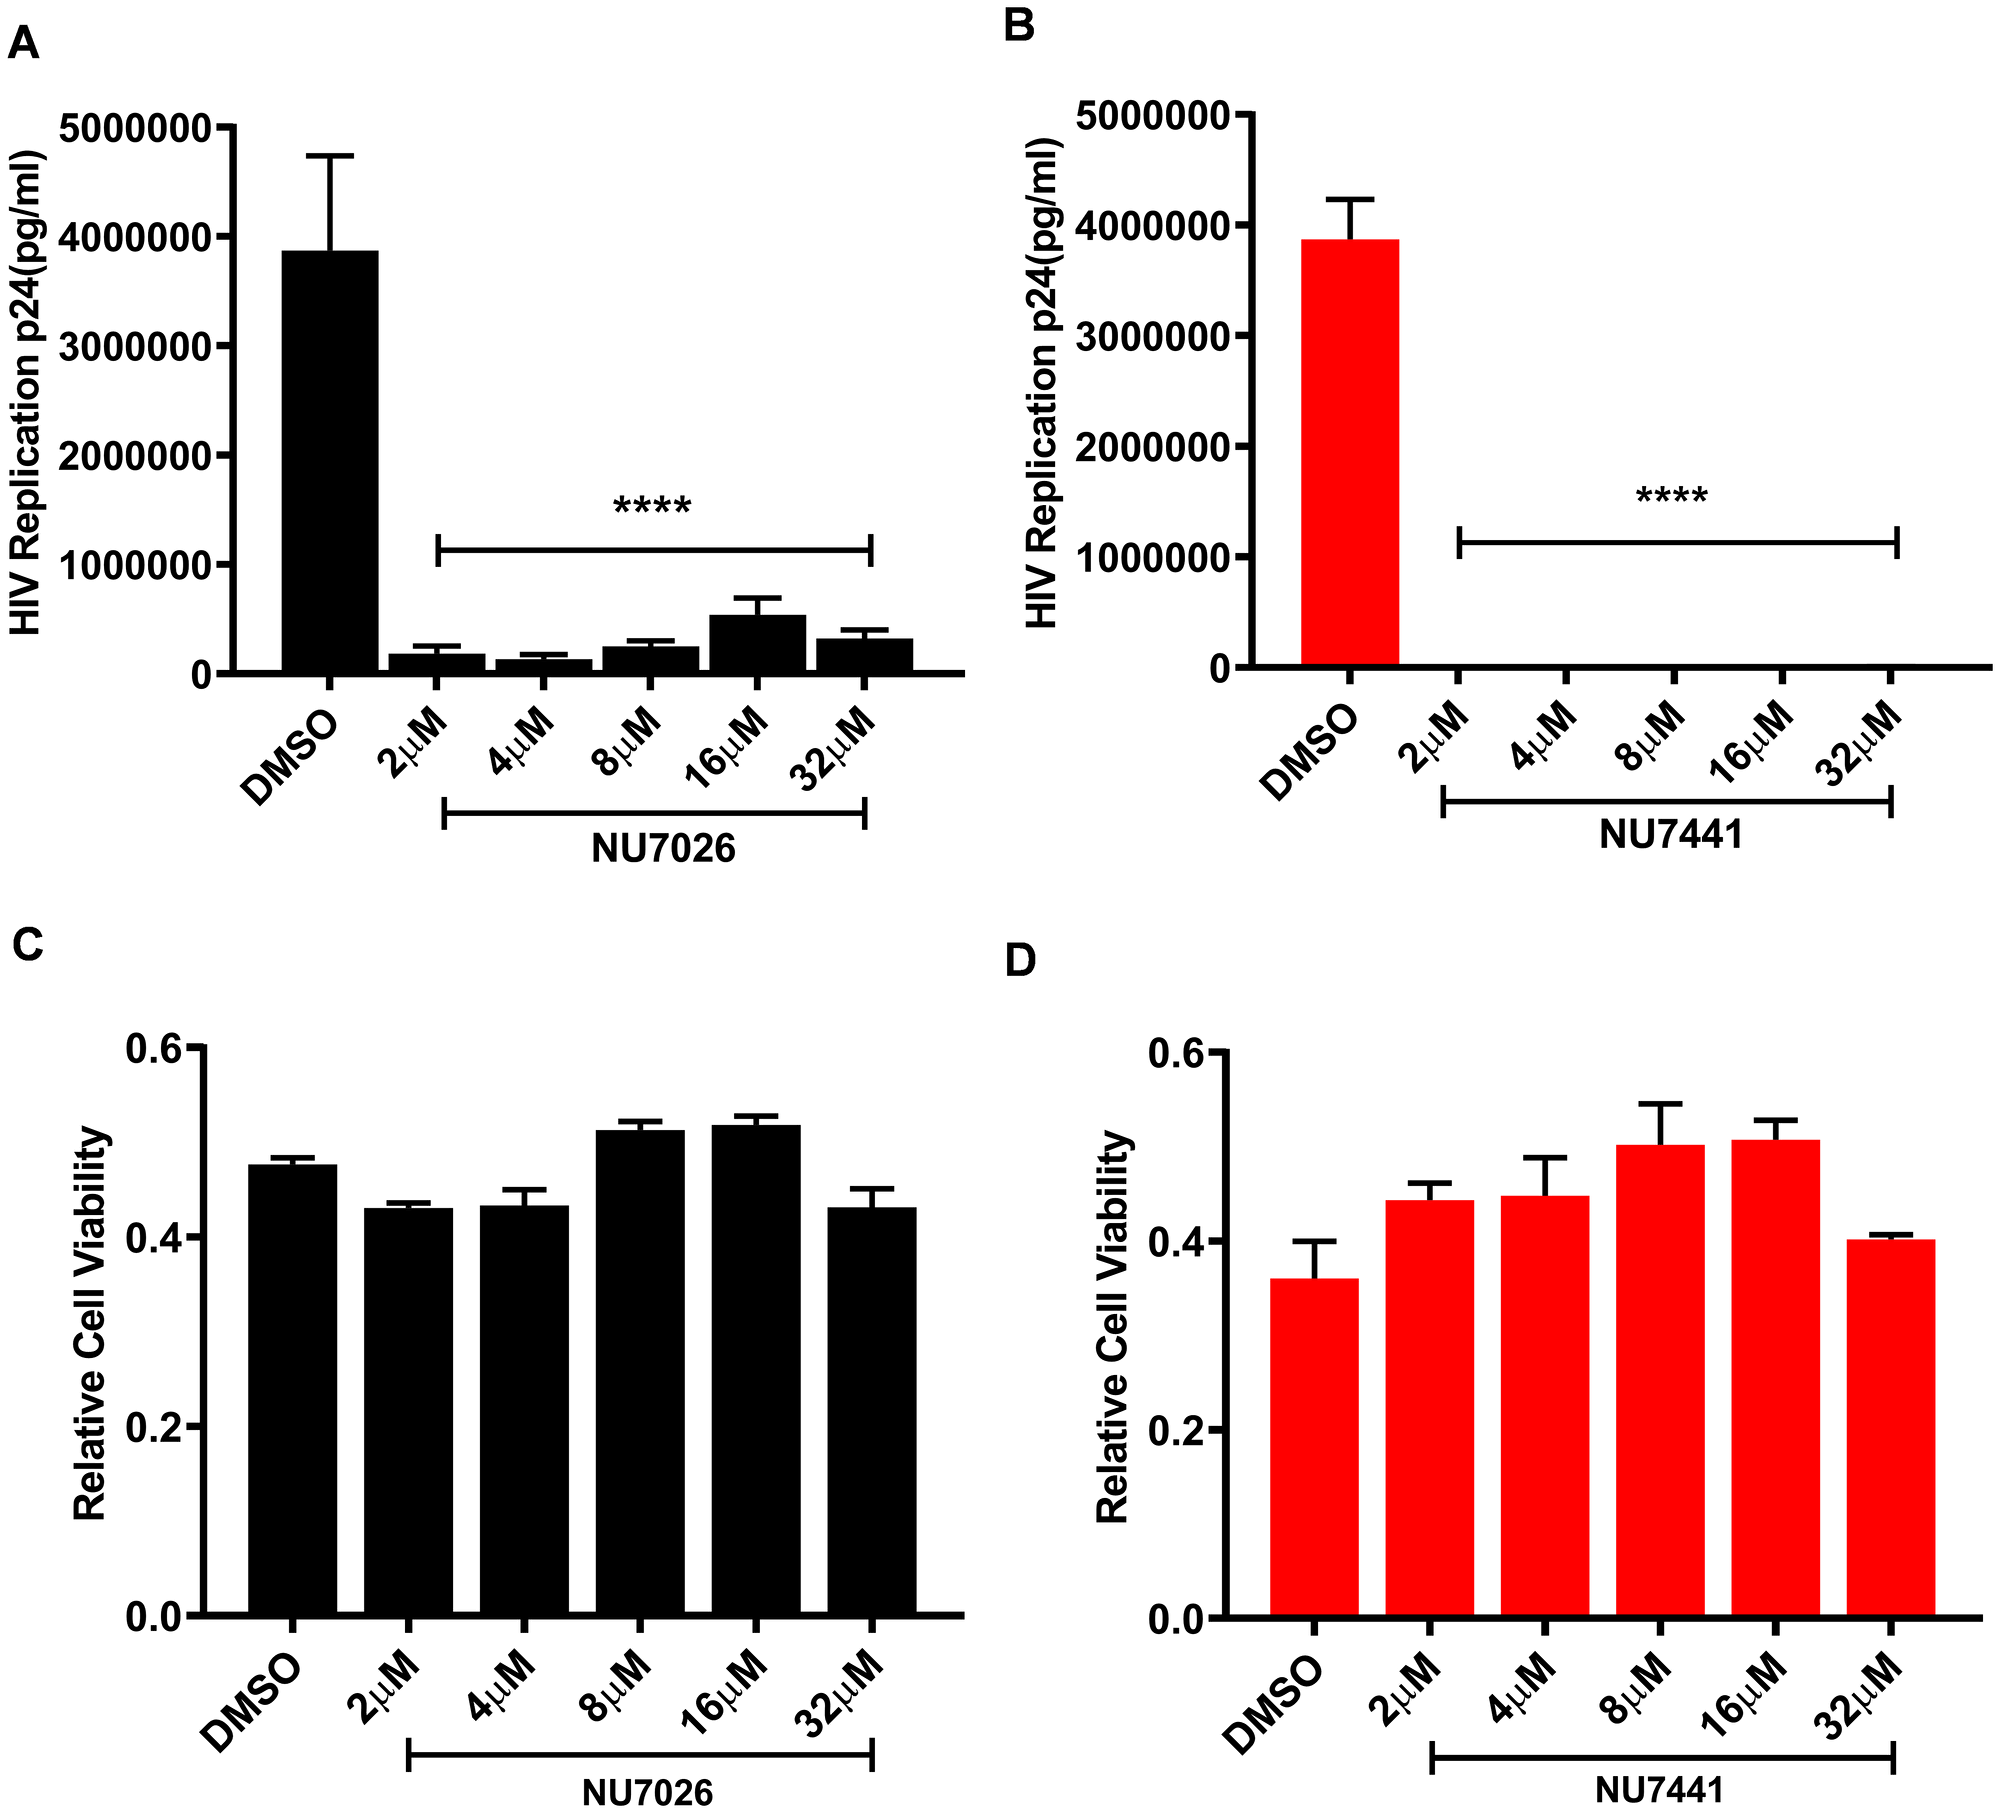 DNA-PK inhibitors completely block HIV replication in MT-4 T cells without showing cytotoxicity.